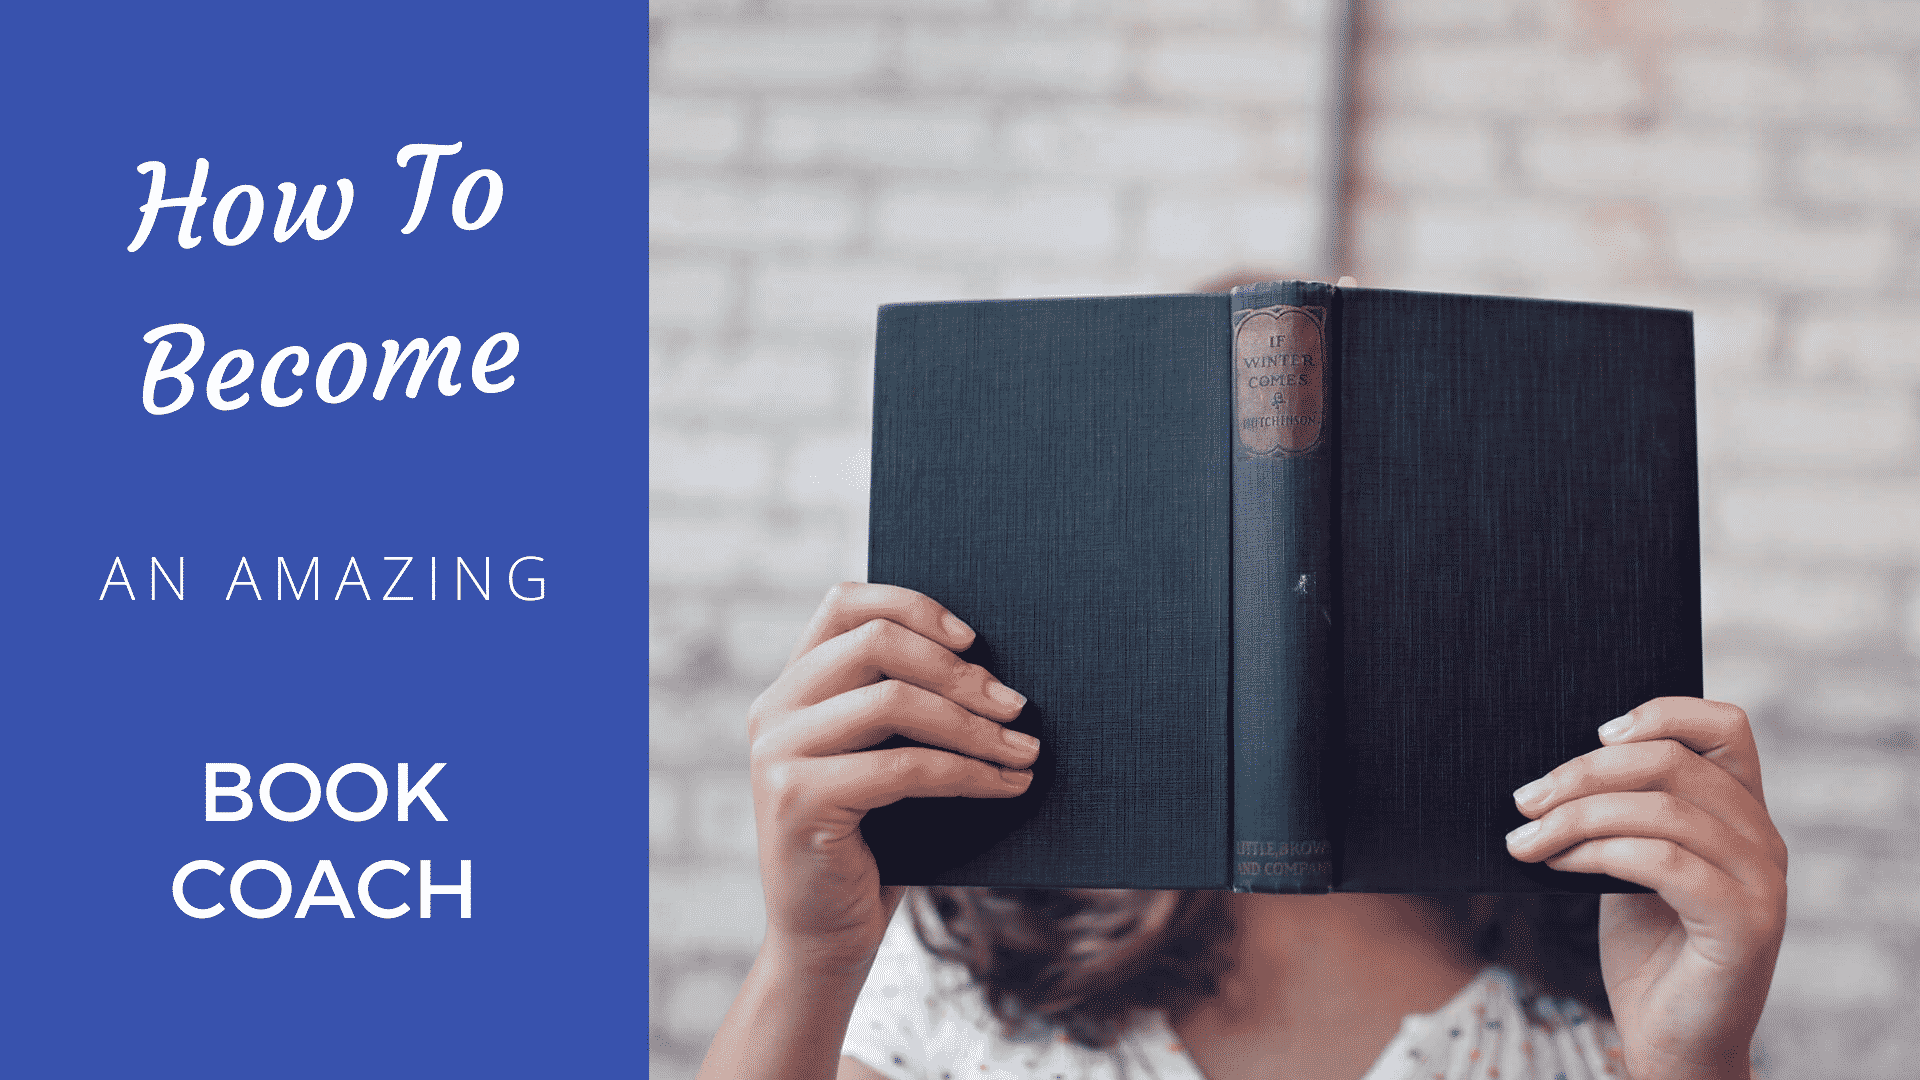 How to Become an Amazing Book Coach in 2021 book coach